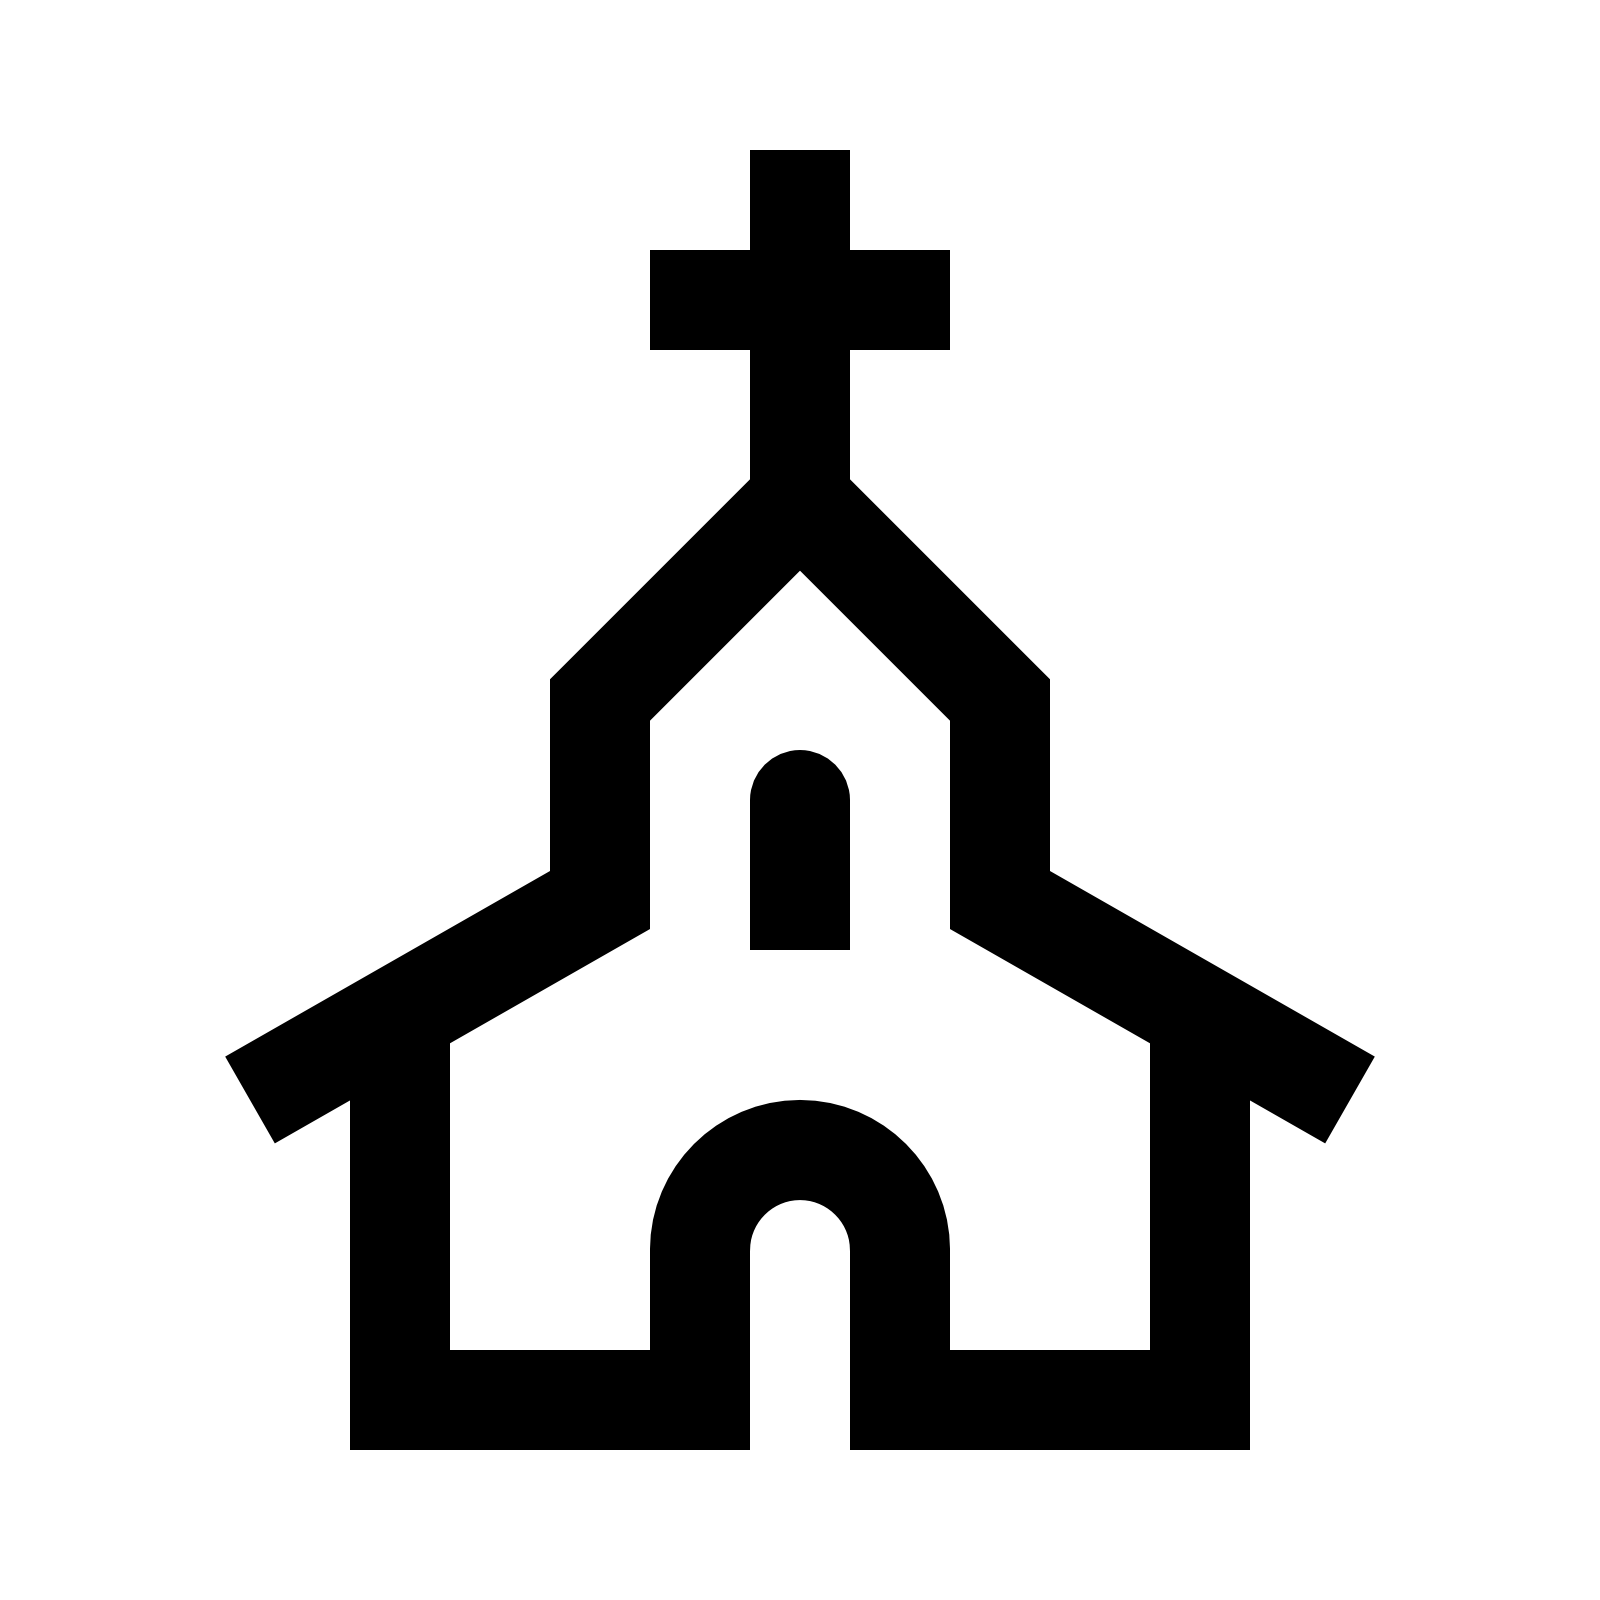 Missions clipart religion. Church png transparent images